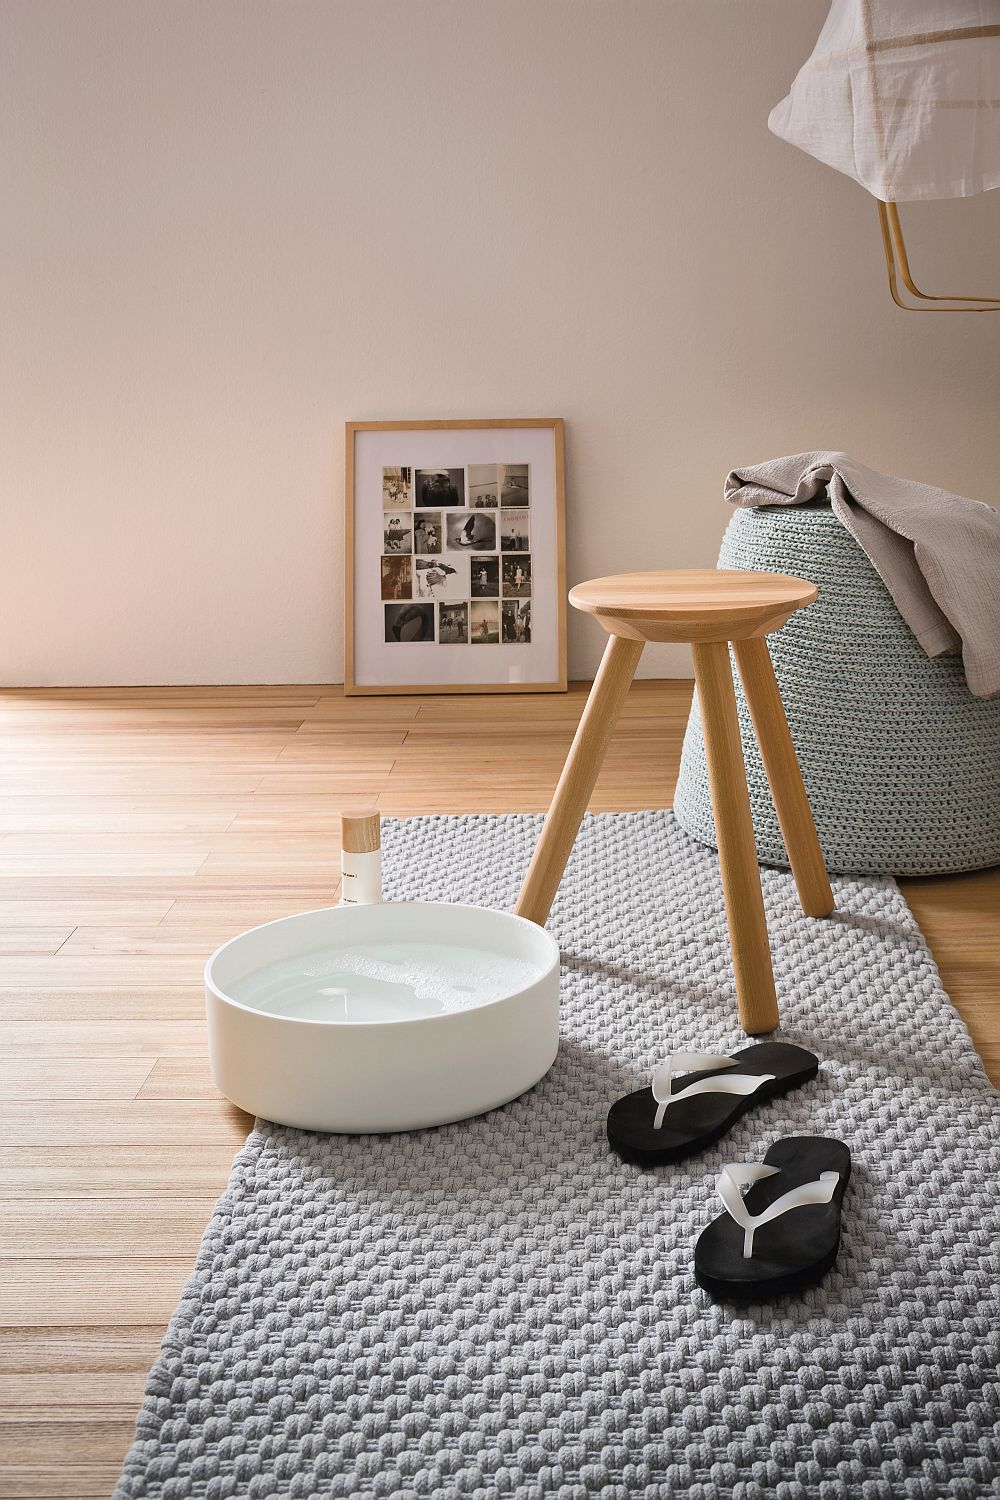 Smart shower stool also helps hold your bath accessories